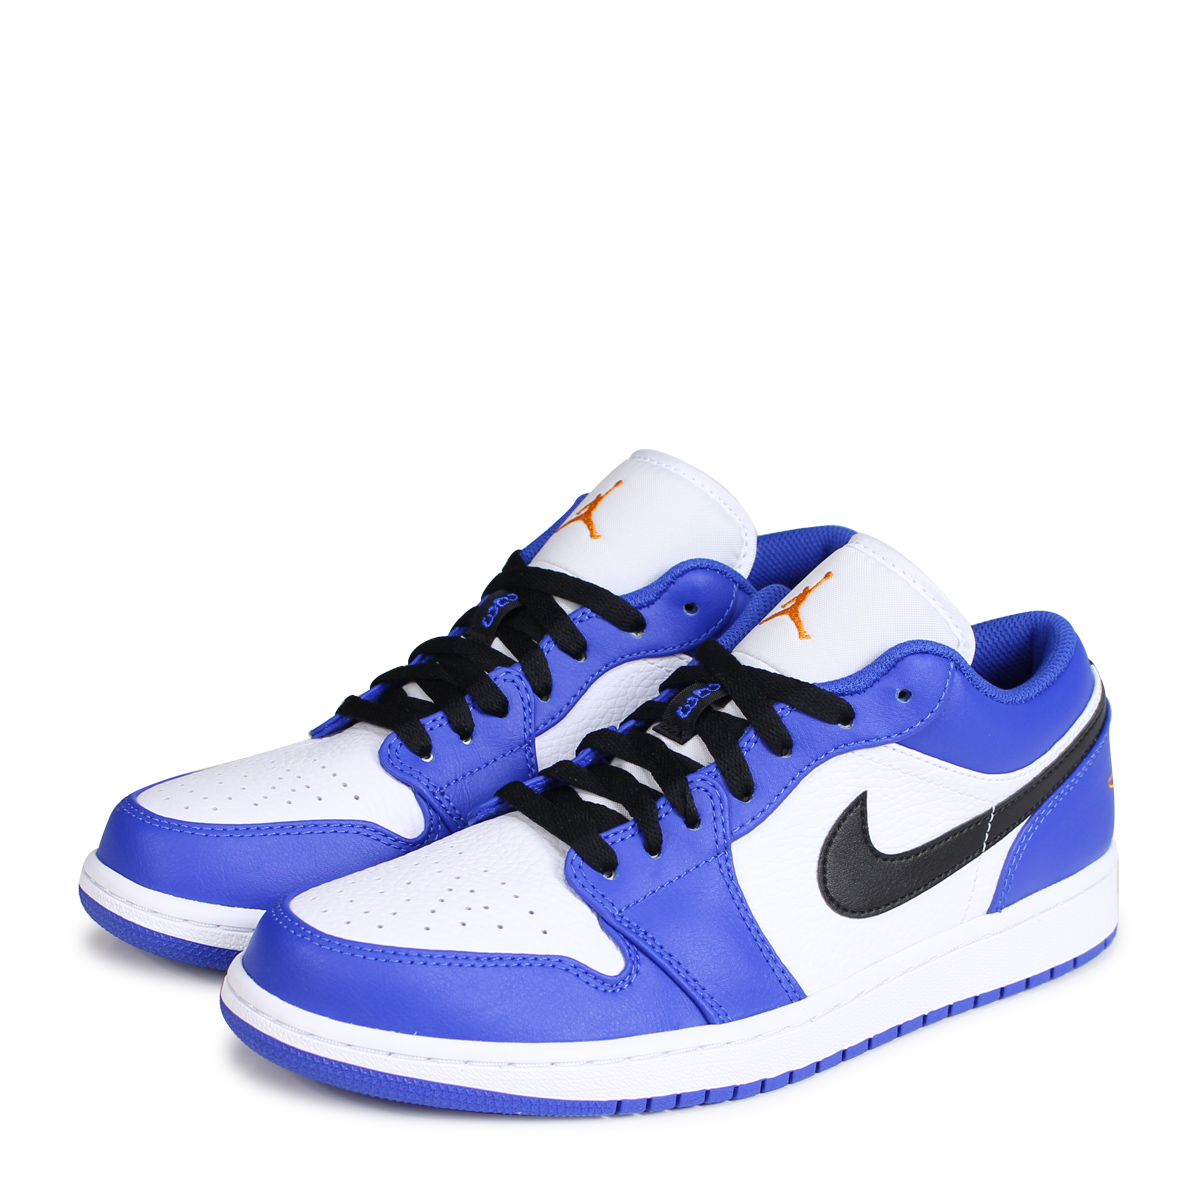 uk availability 62b7e 11ccb NIKE AIR JORDAN 1 LOW Nike Air Jordan 1 sneakers men 553,558-401 blue [load  planned Shinnyu load in reservation product 7/7 containing] [187]